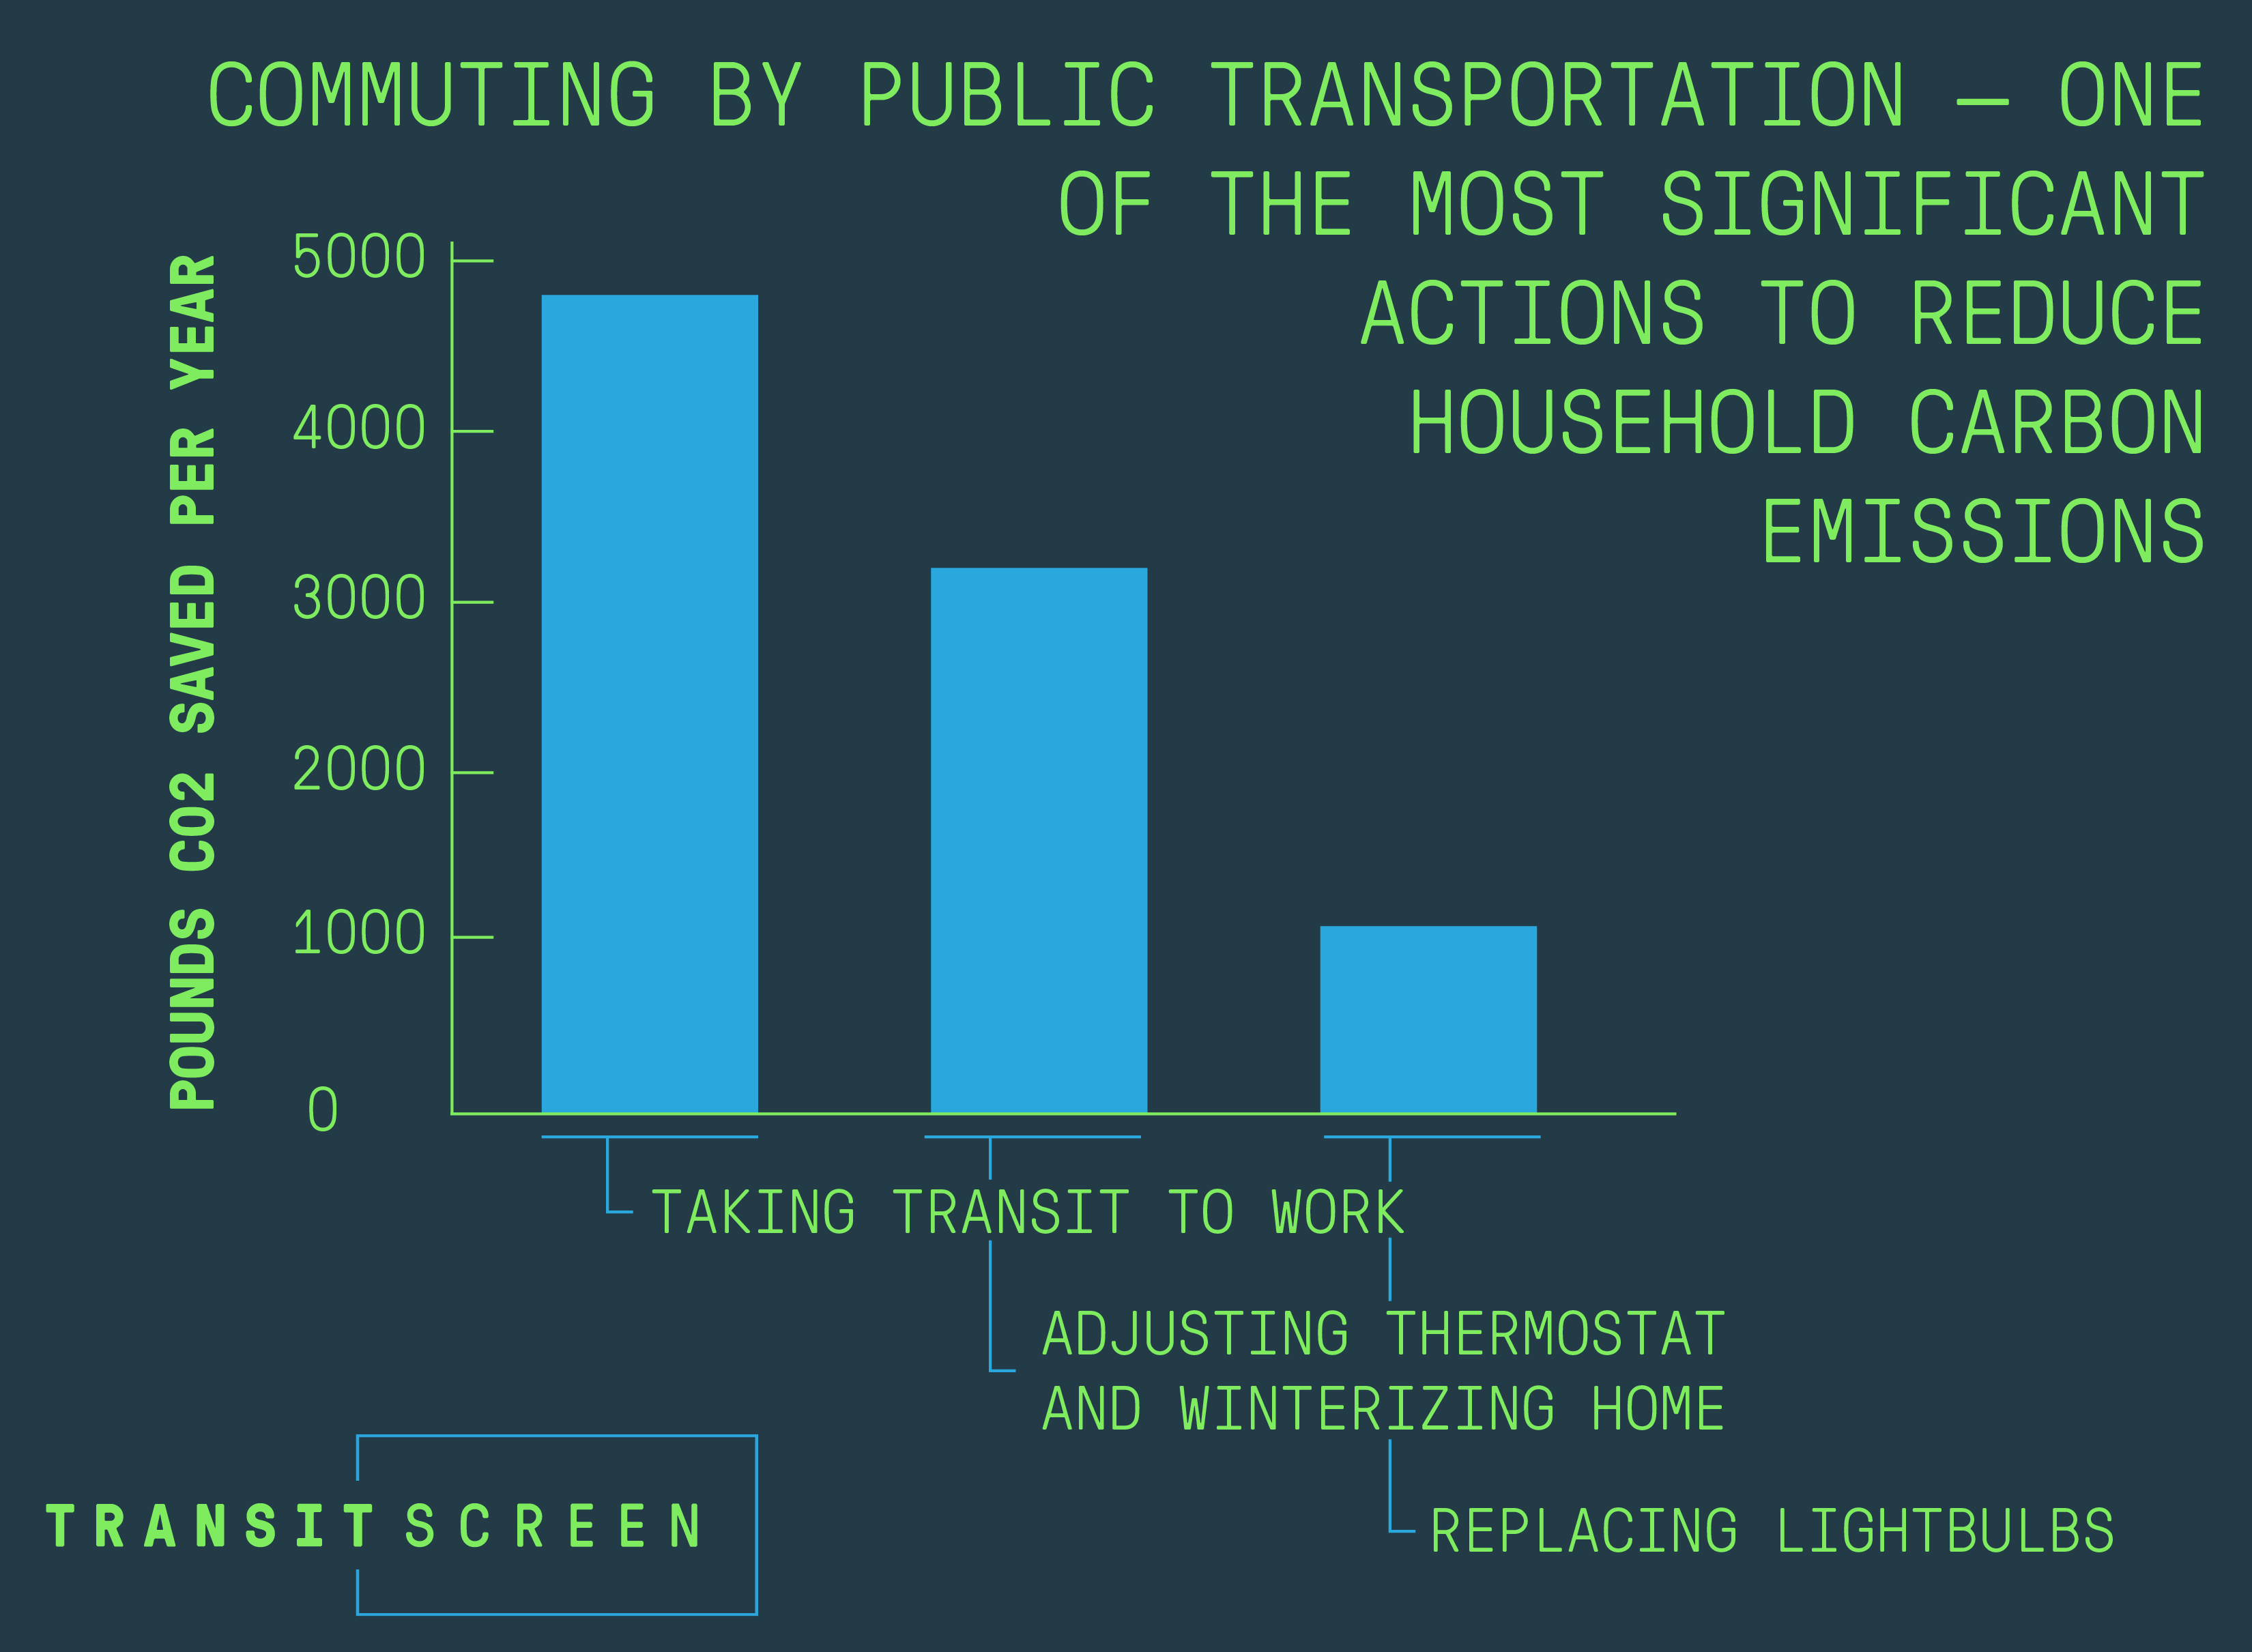 Commuting by public transportation saves 4,800 pounds of carbon dioxide per person per year